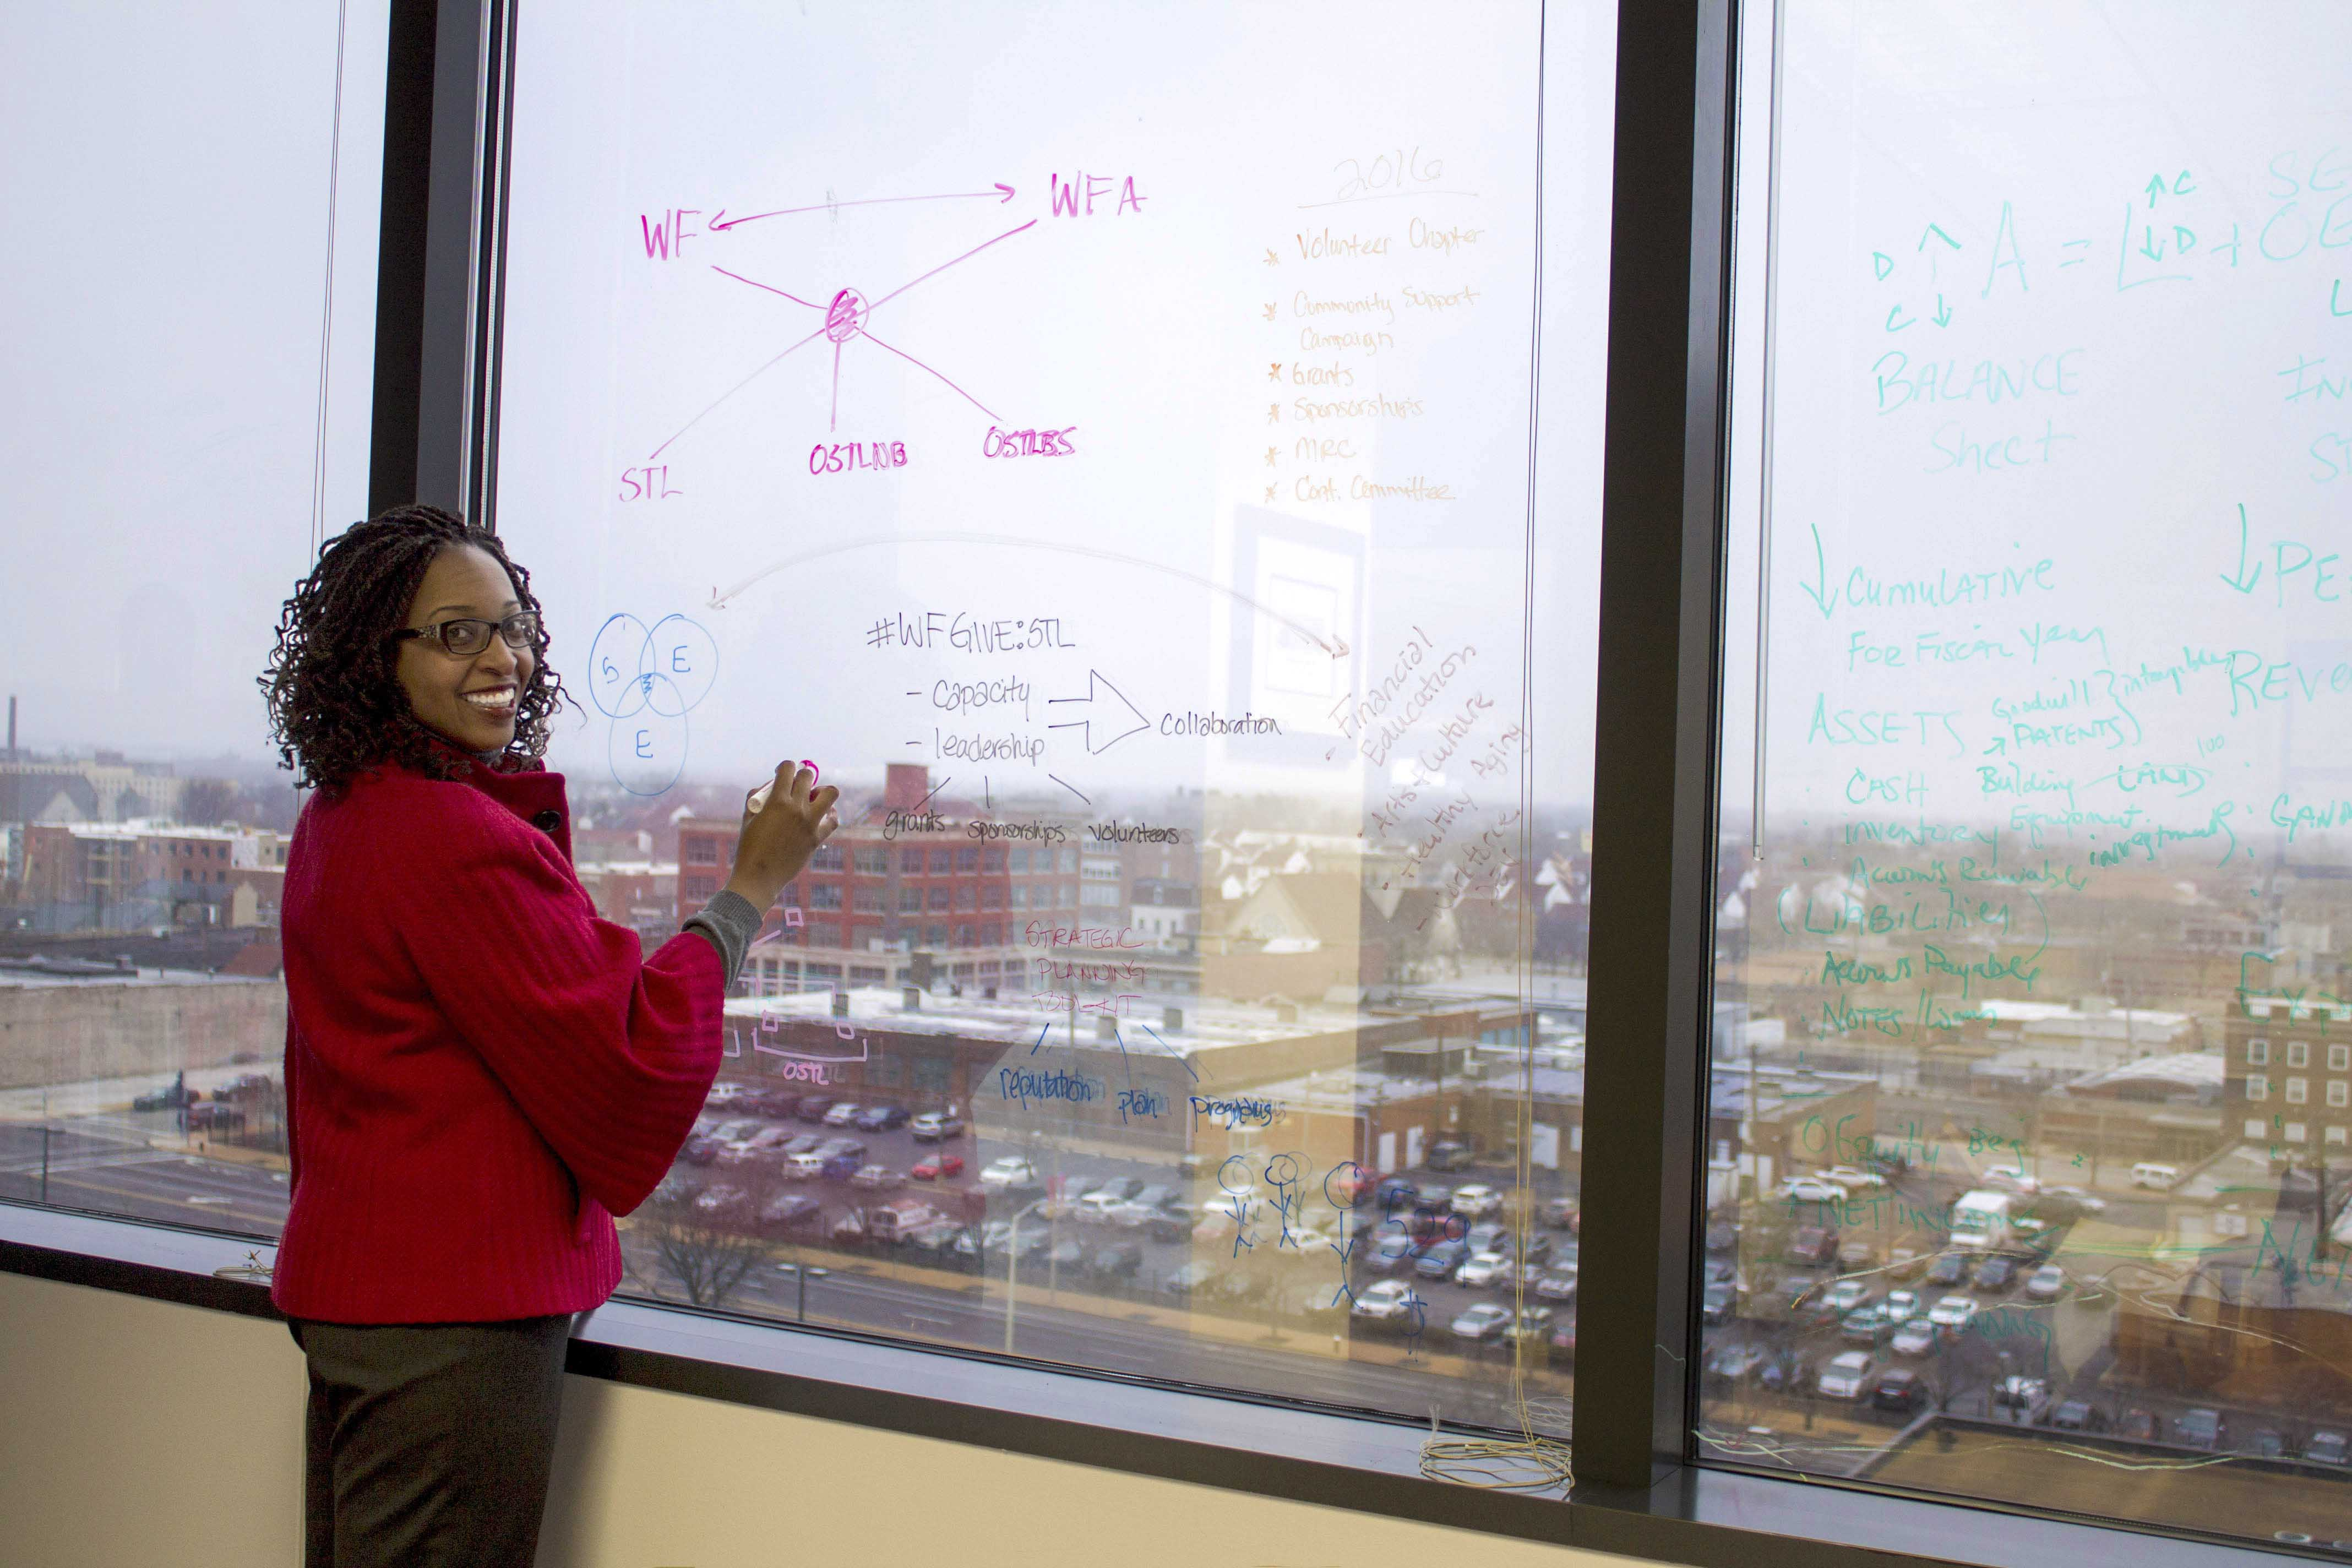 Cooksey at her office window overlooking the city.